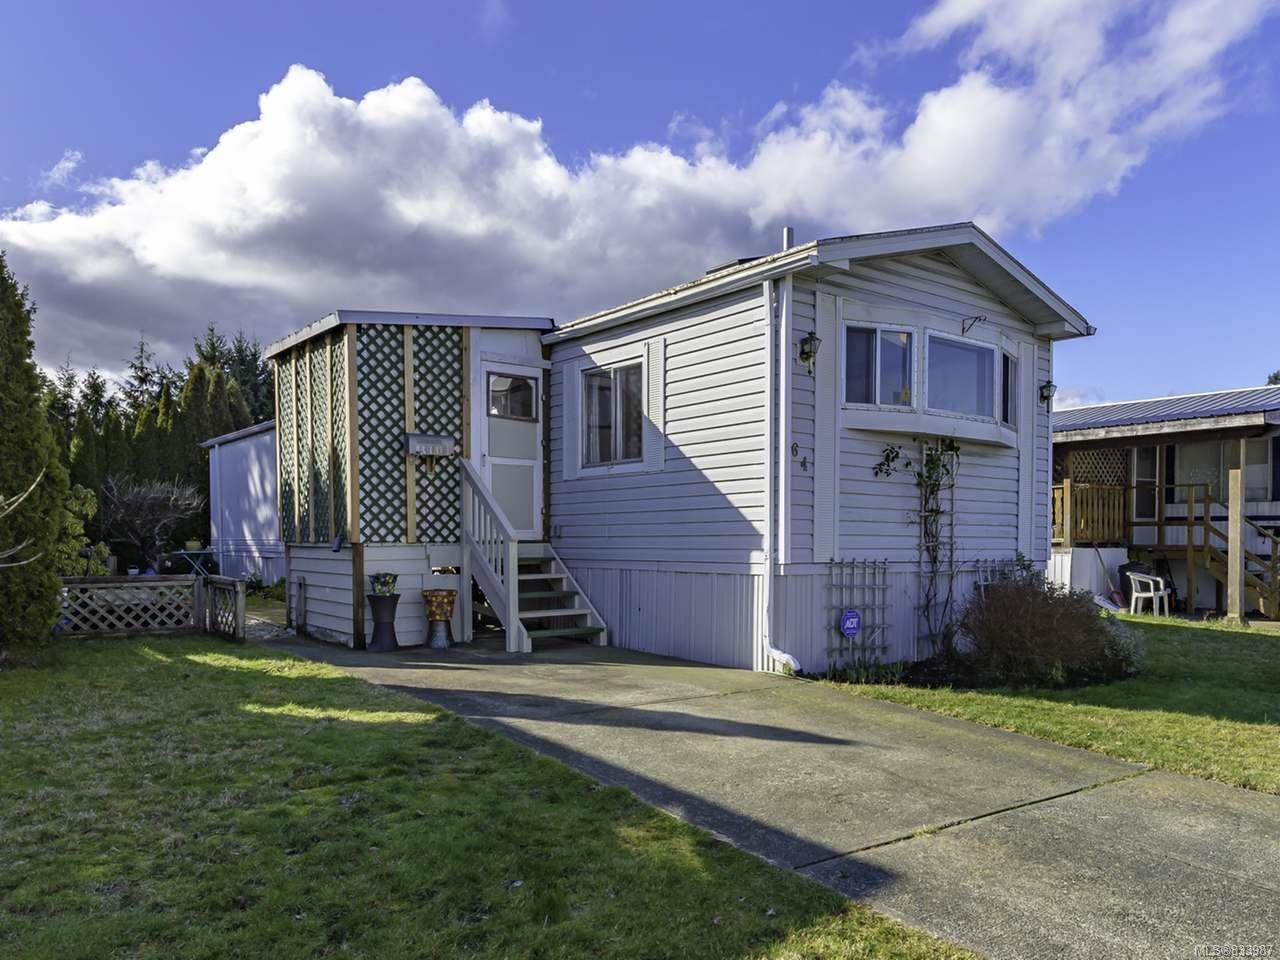 Photo 3: Photos: 64 390 Cowichan Ave in COURTENAY: CV Courtenay East Manufactured Home for sale (Comox Valley)  : MLS®# 833987